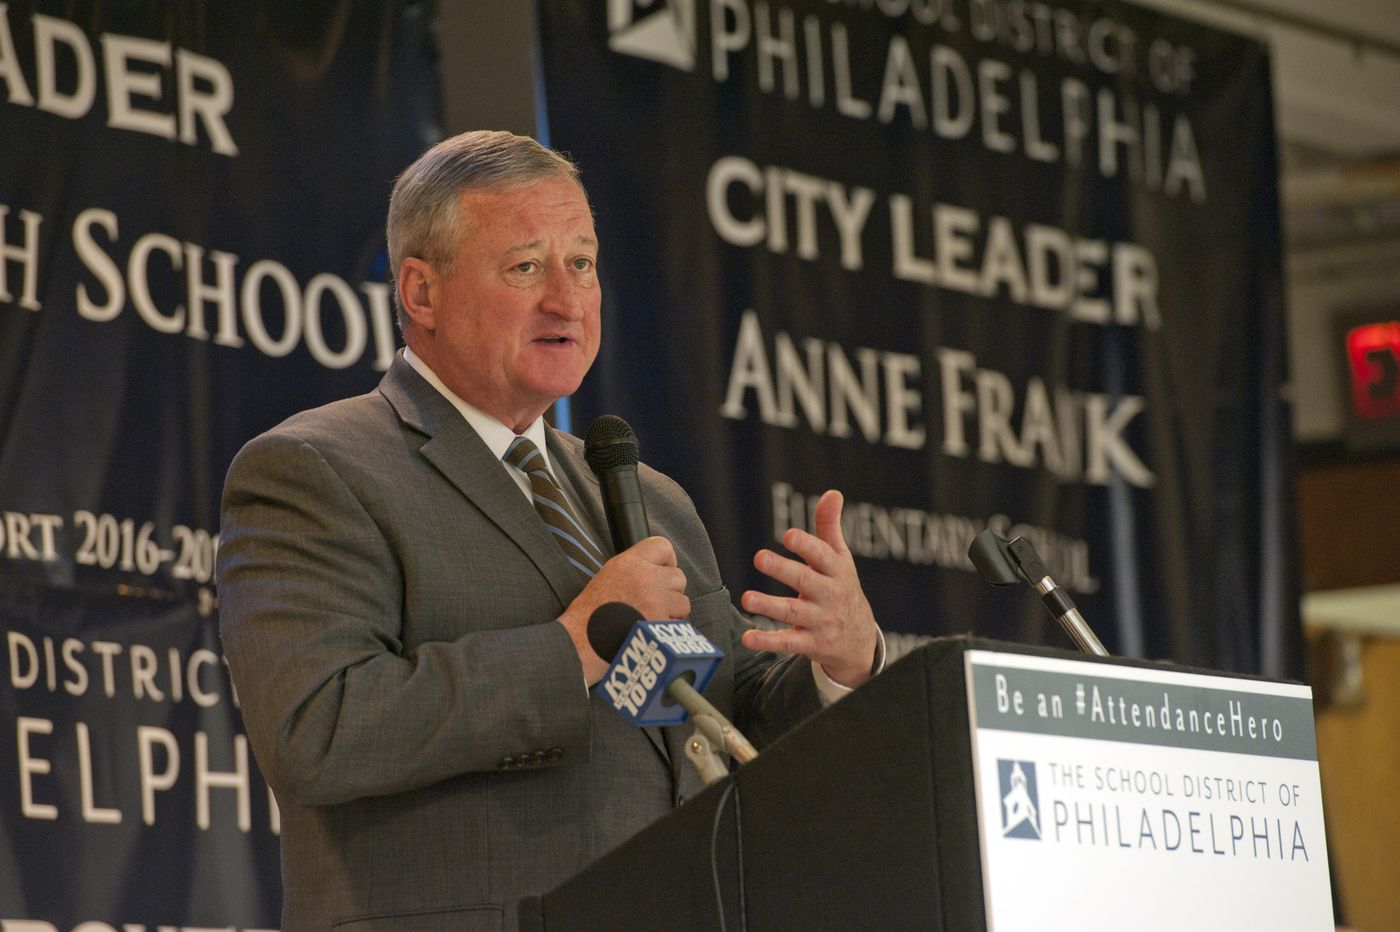 Best, most improved schools in Philly honored